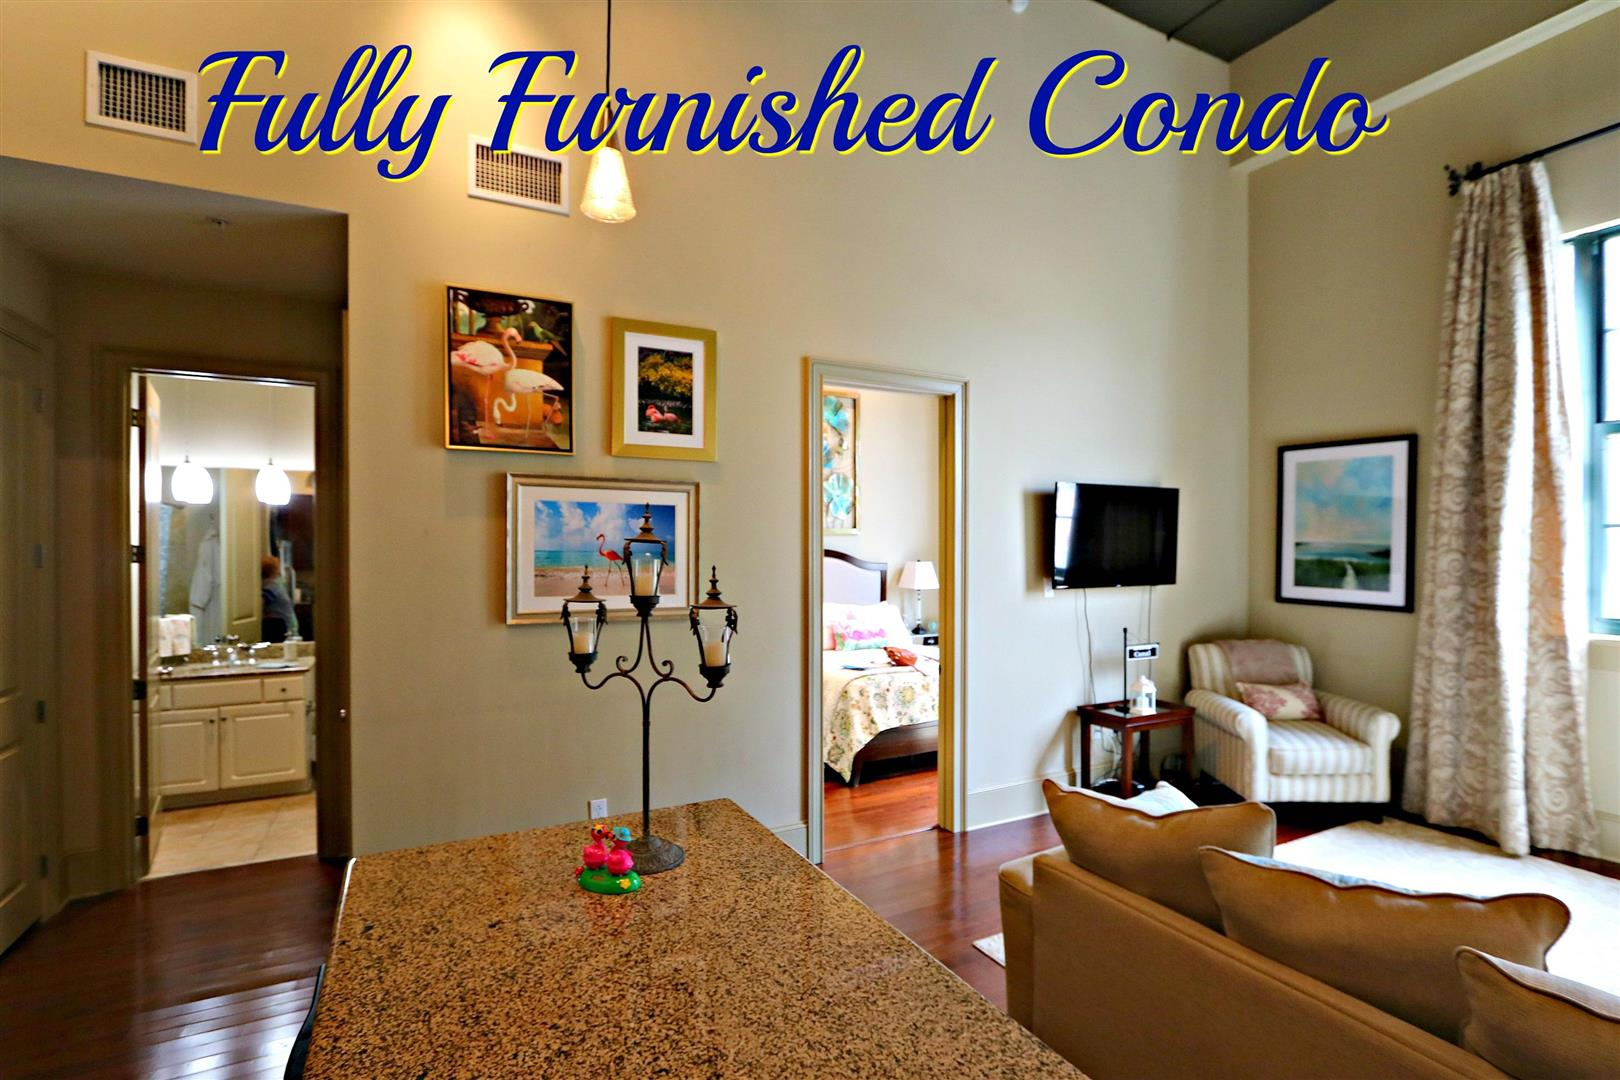 1201CanalSt.Condo260Furnished.jpg